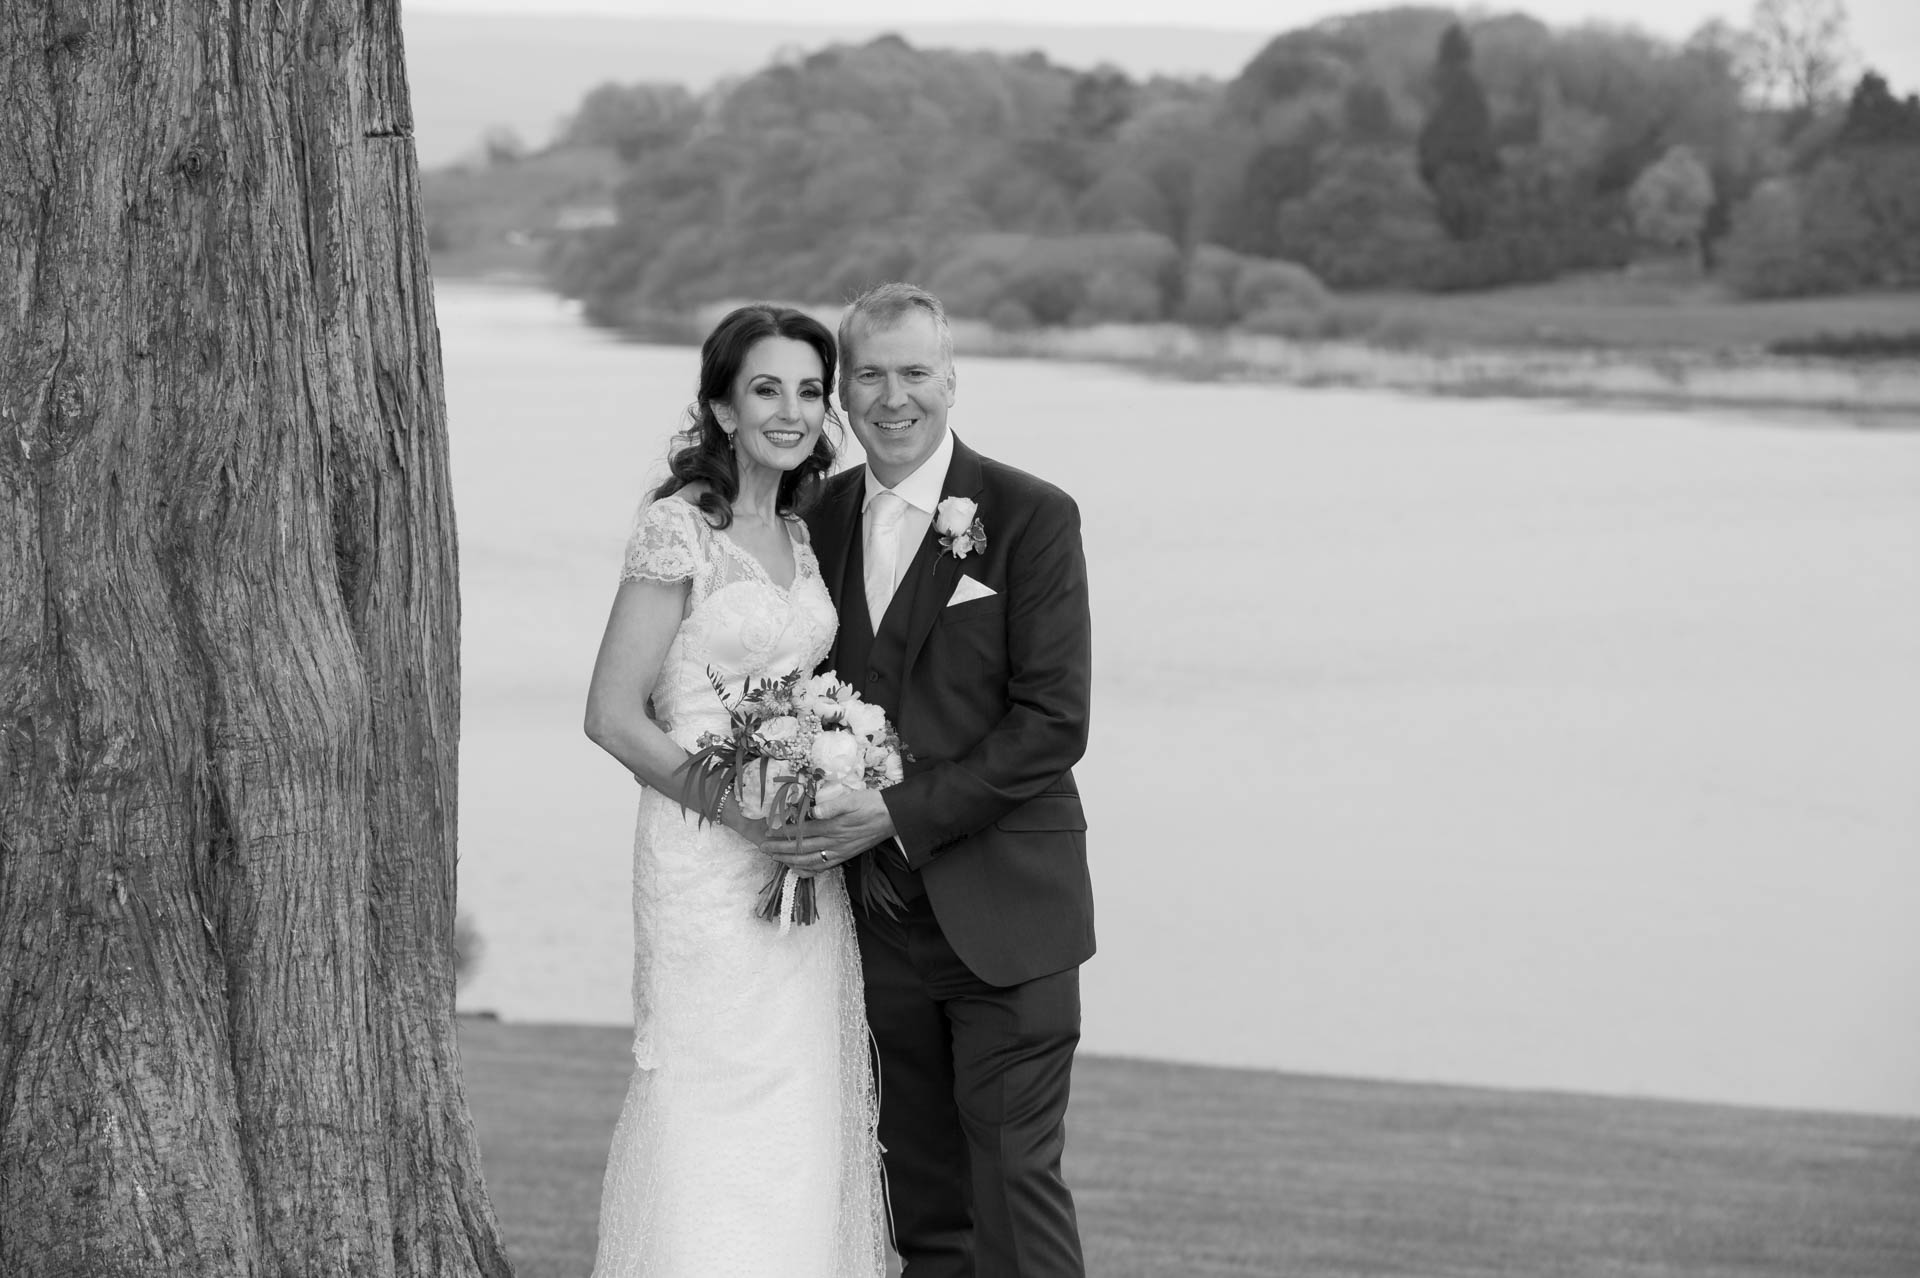 Picture of Vania and Robert at Killyhevlin Hotel on their wedding day, captured by Fermanagh, Tyrone and Northern Ireland Wedding Photographer, Trevor Lucy Photography